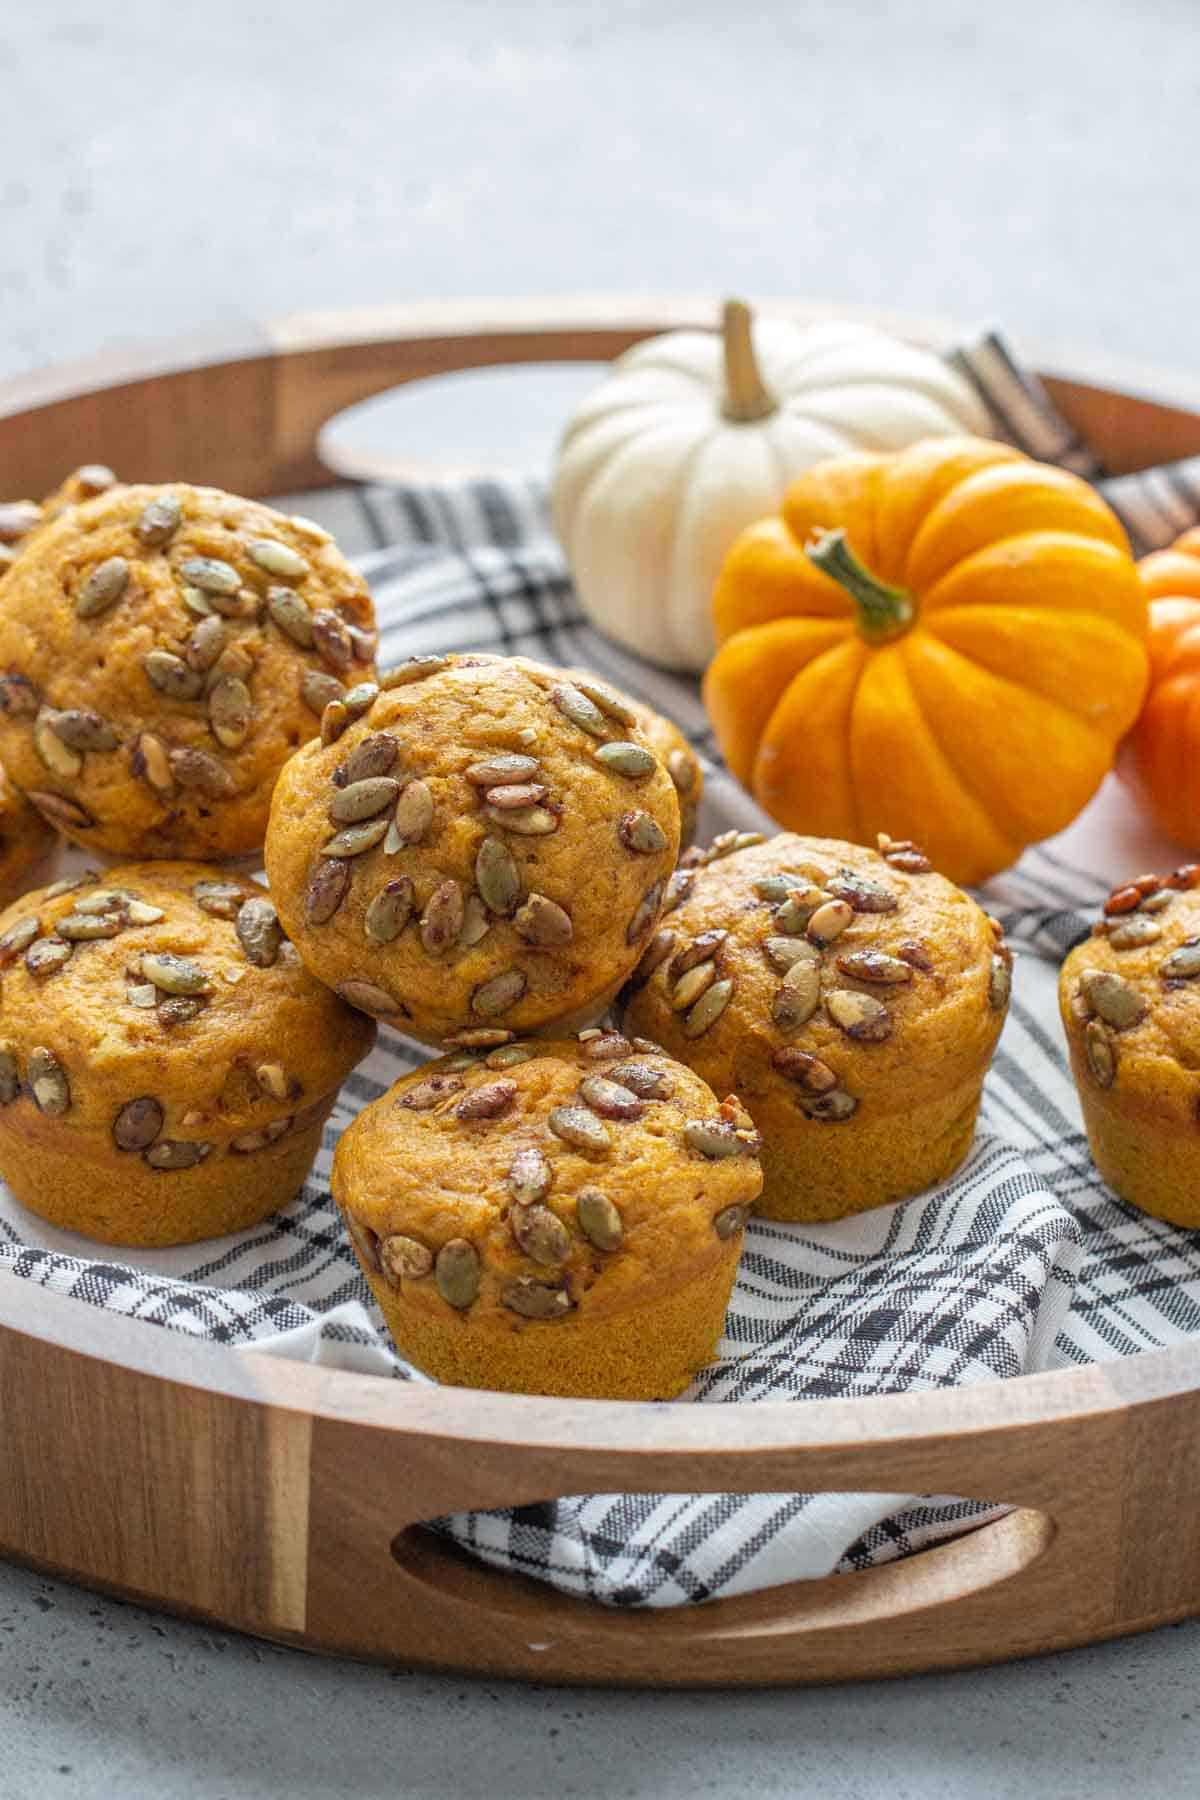 tray of pumpkin muffins with a plaid napkin